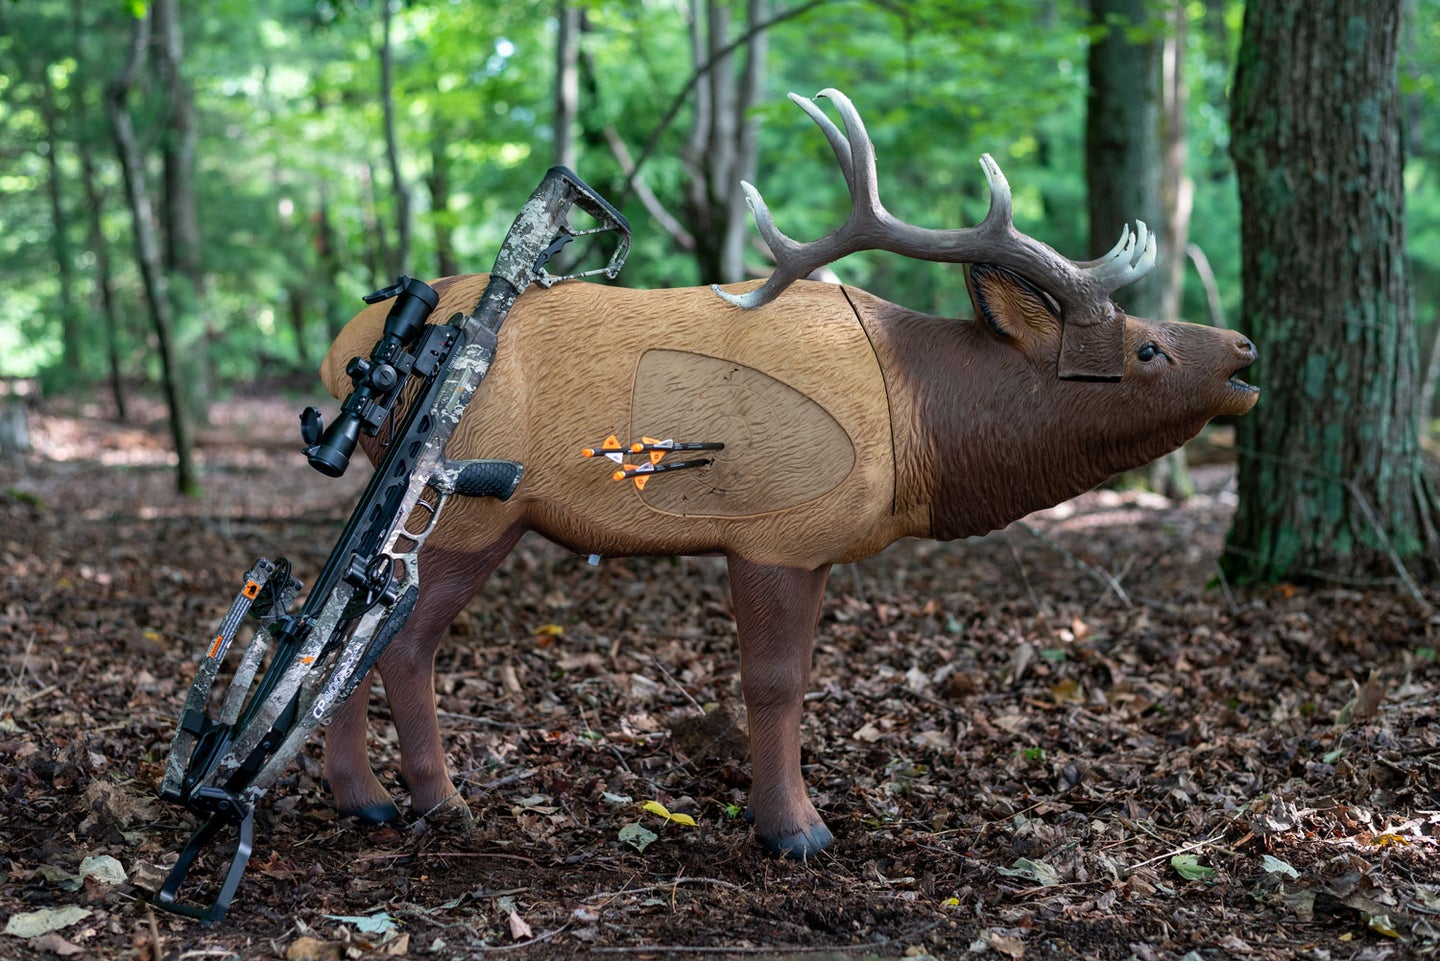 The CenterPoint CP400 crossbow shoots tight groups